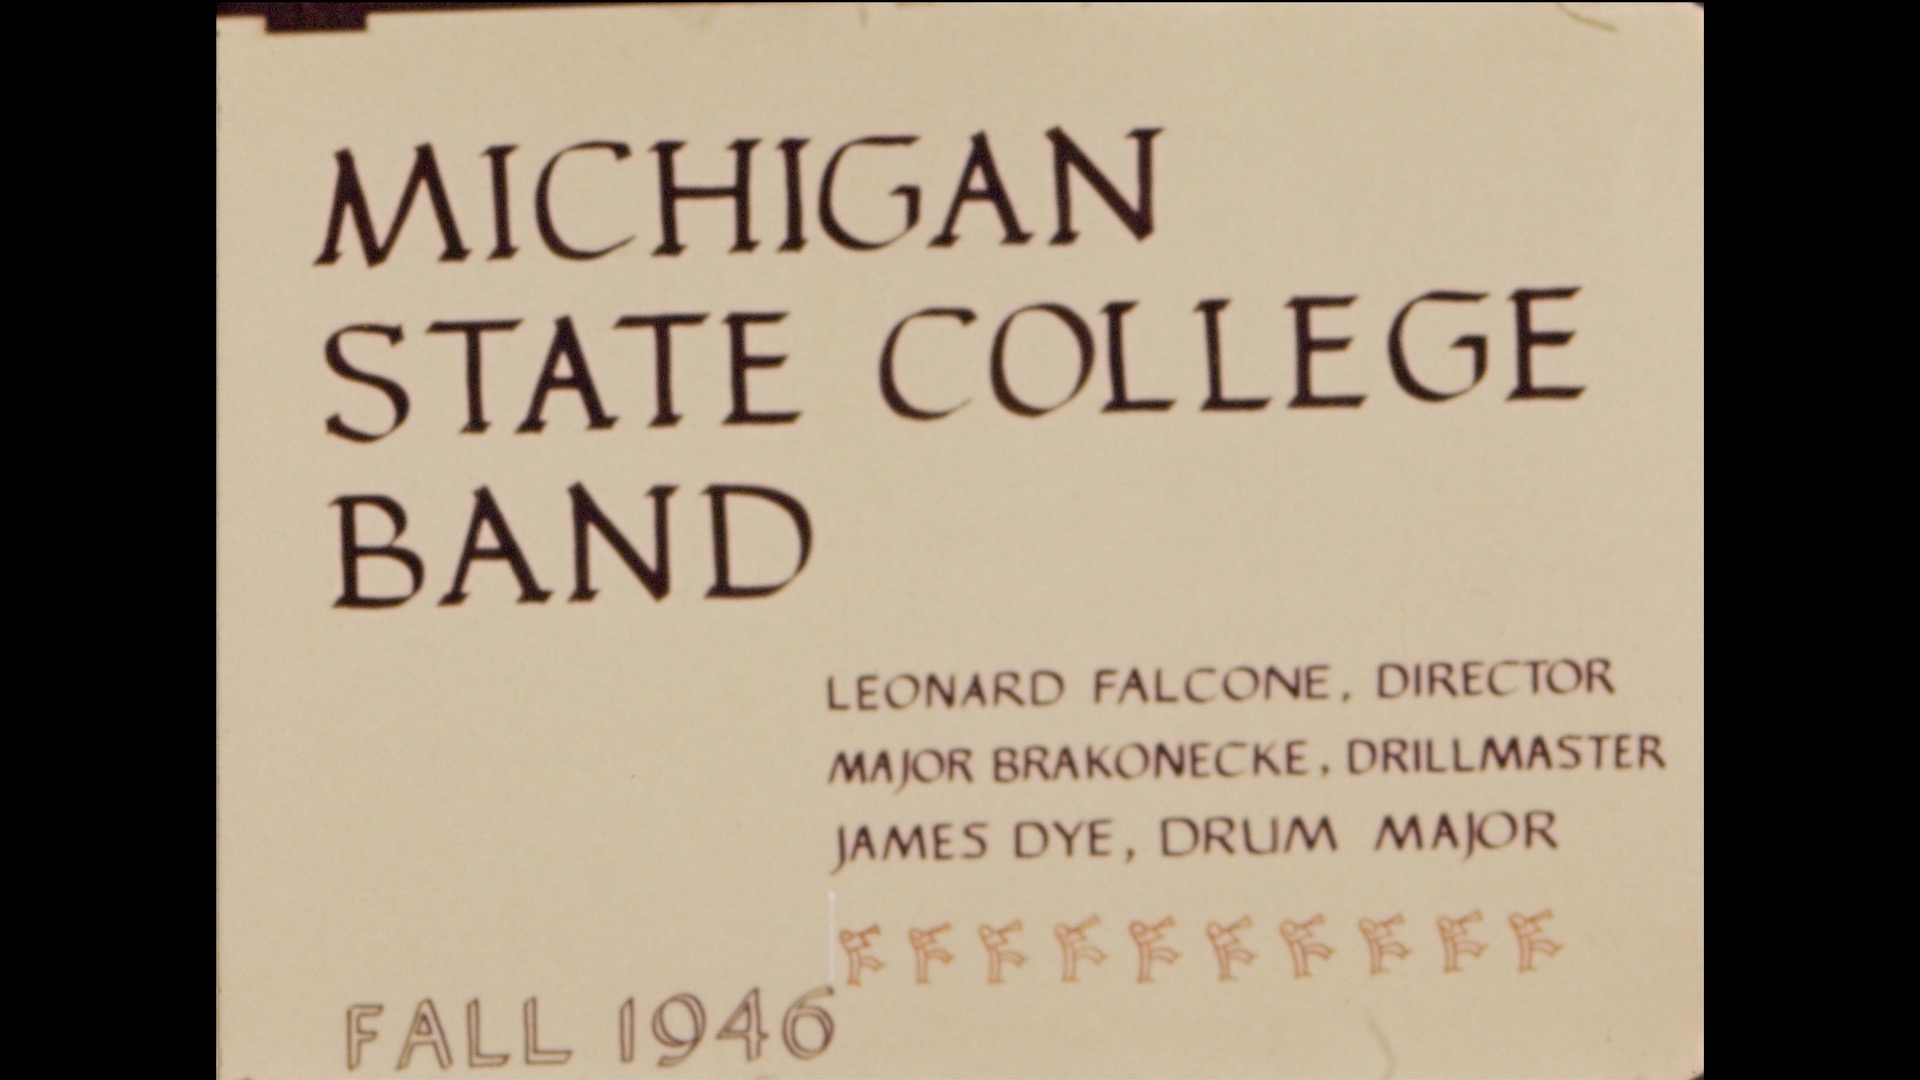 MSC Marching Band, 1946